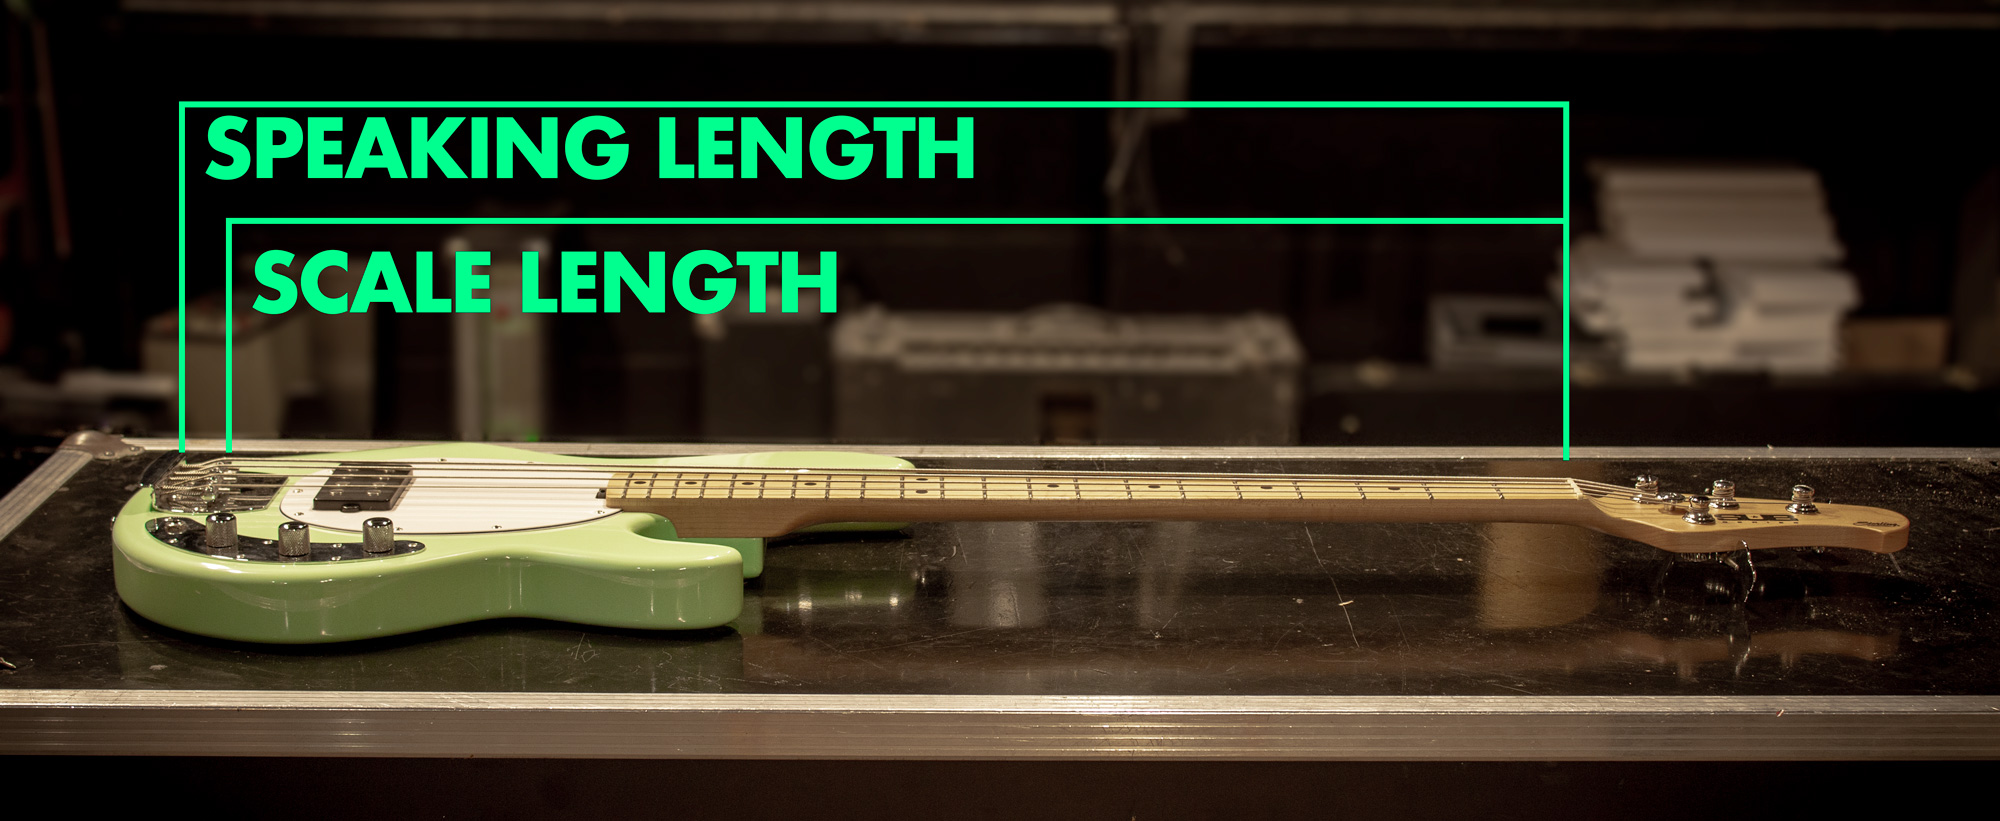 Scale length vs Speaking Length